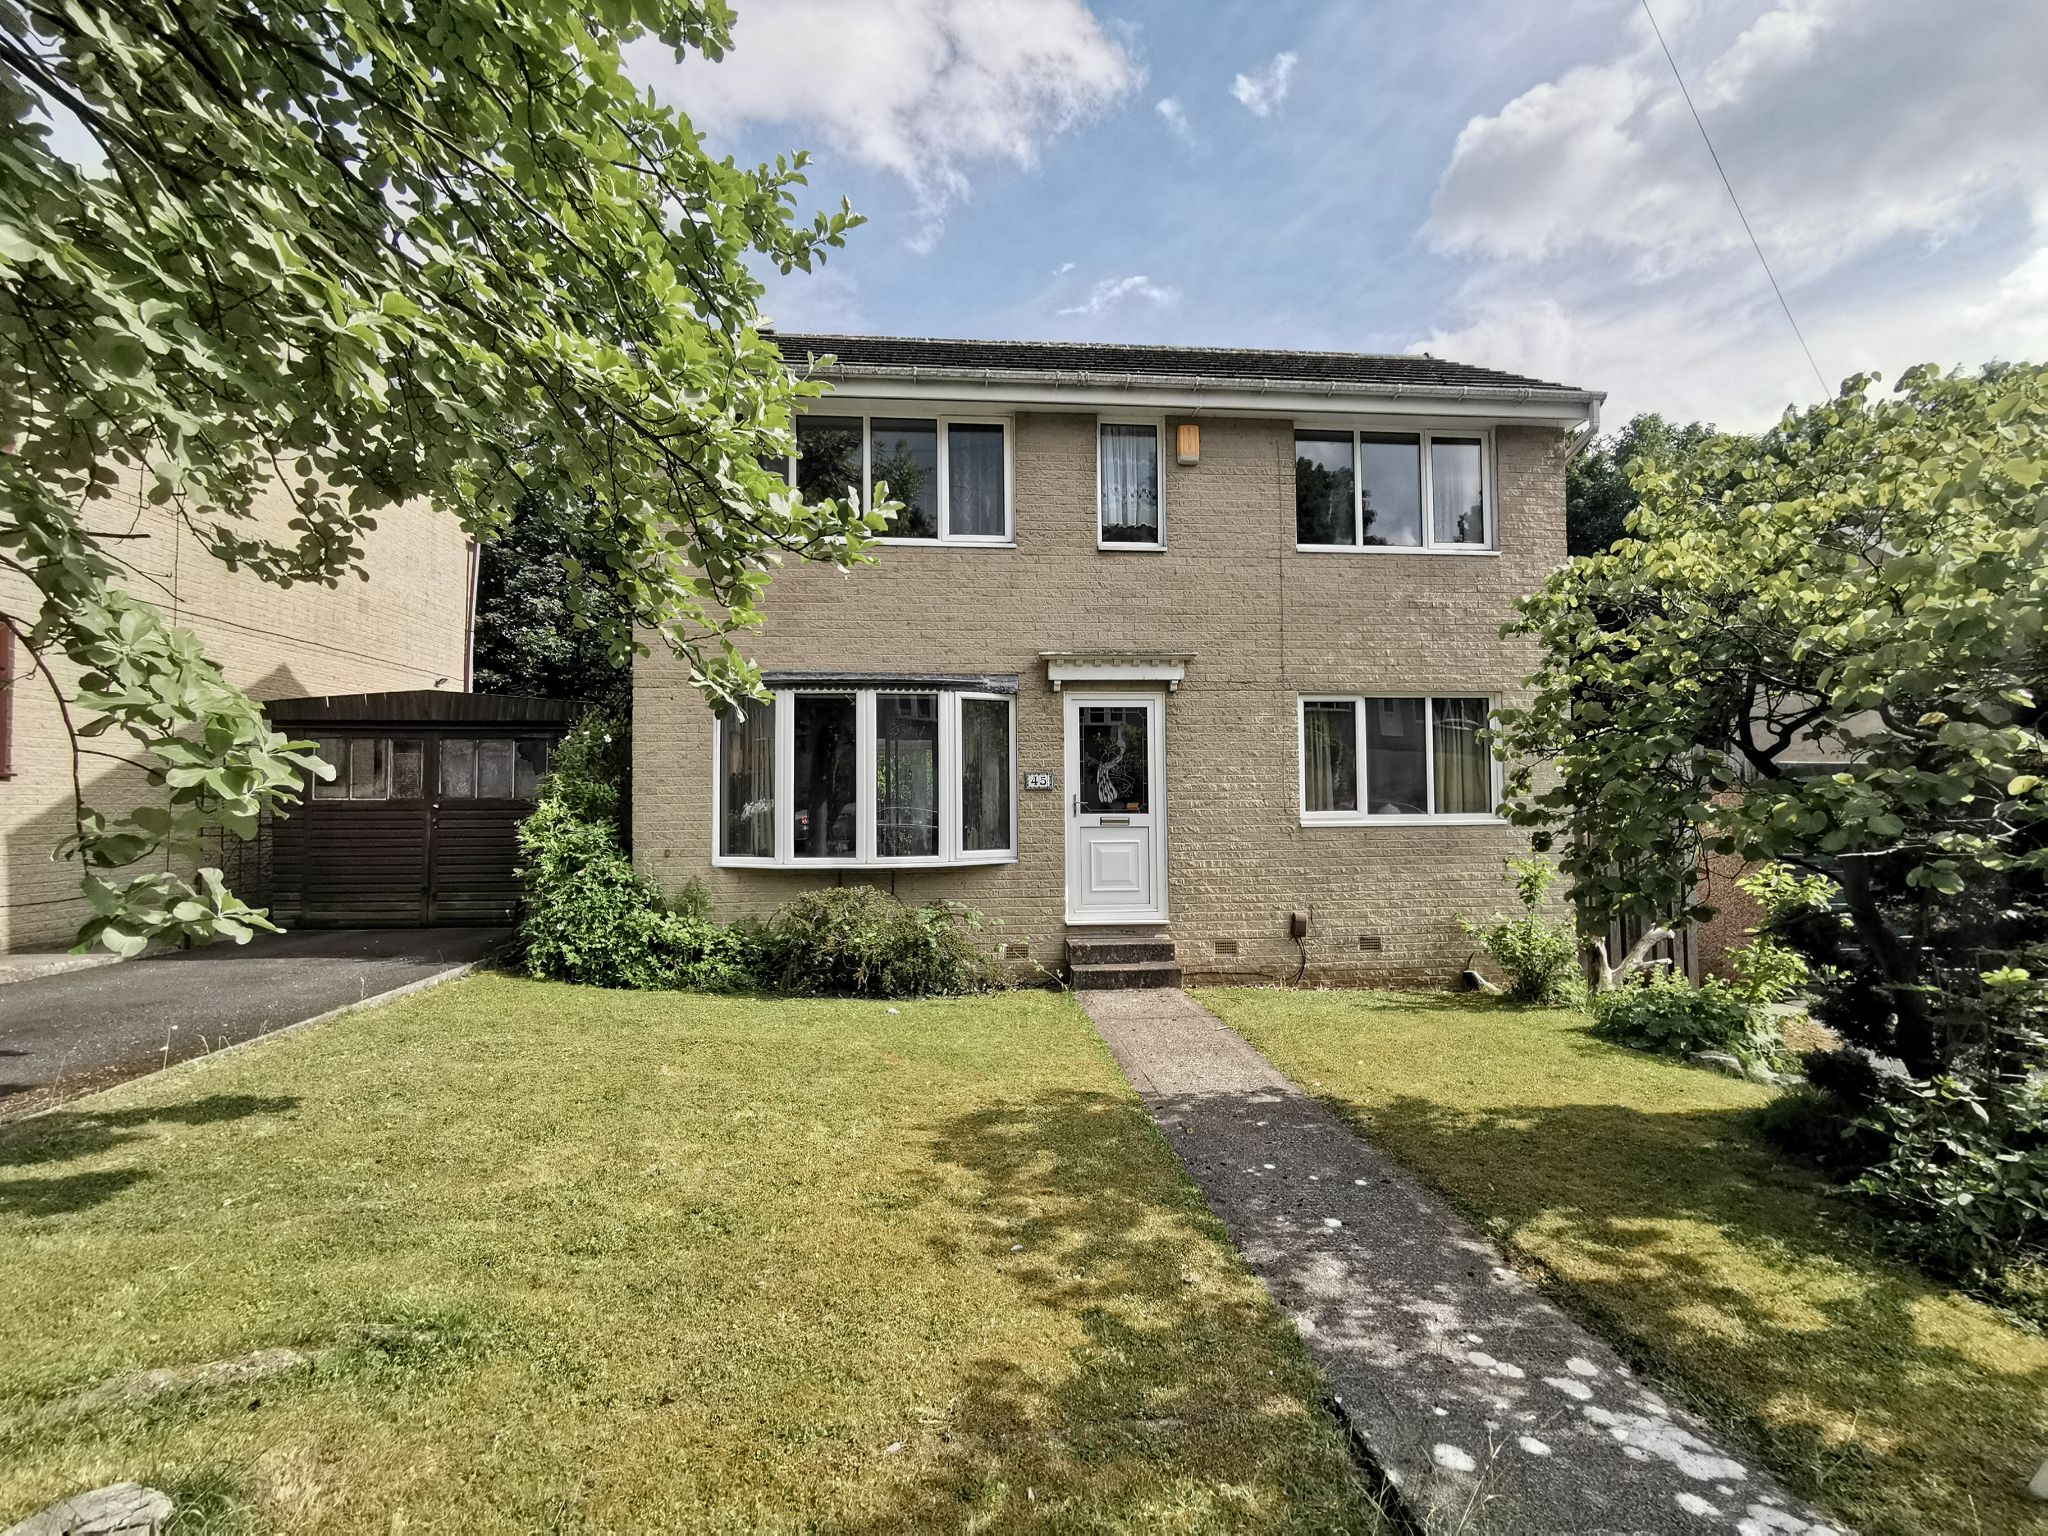 3 bedroom detached house For Sale in Bradford - Photograph 1.